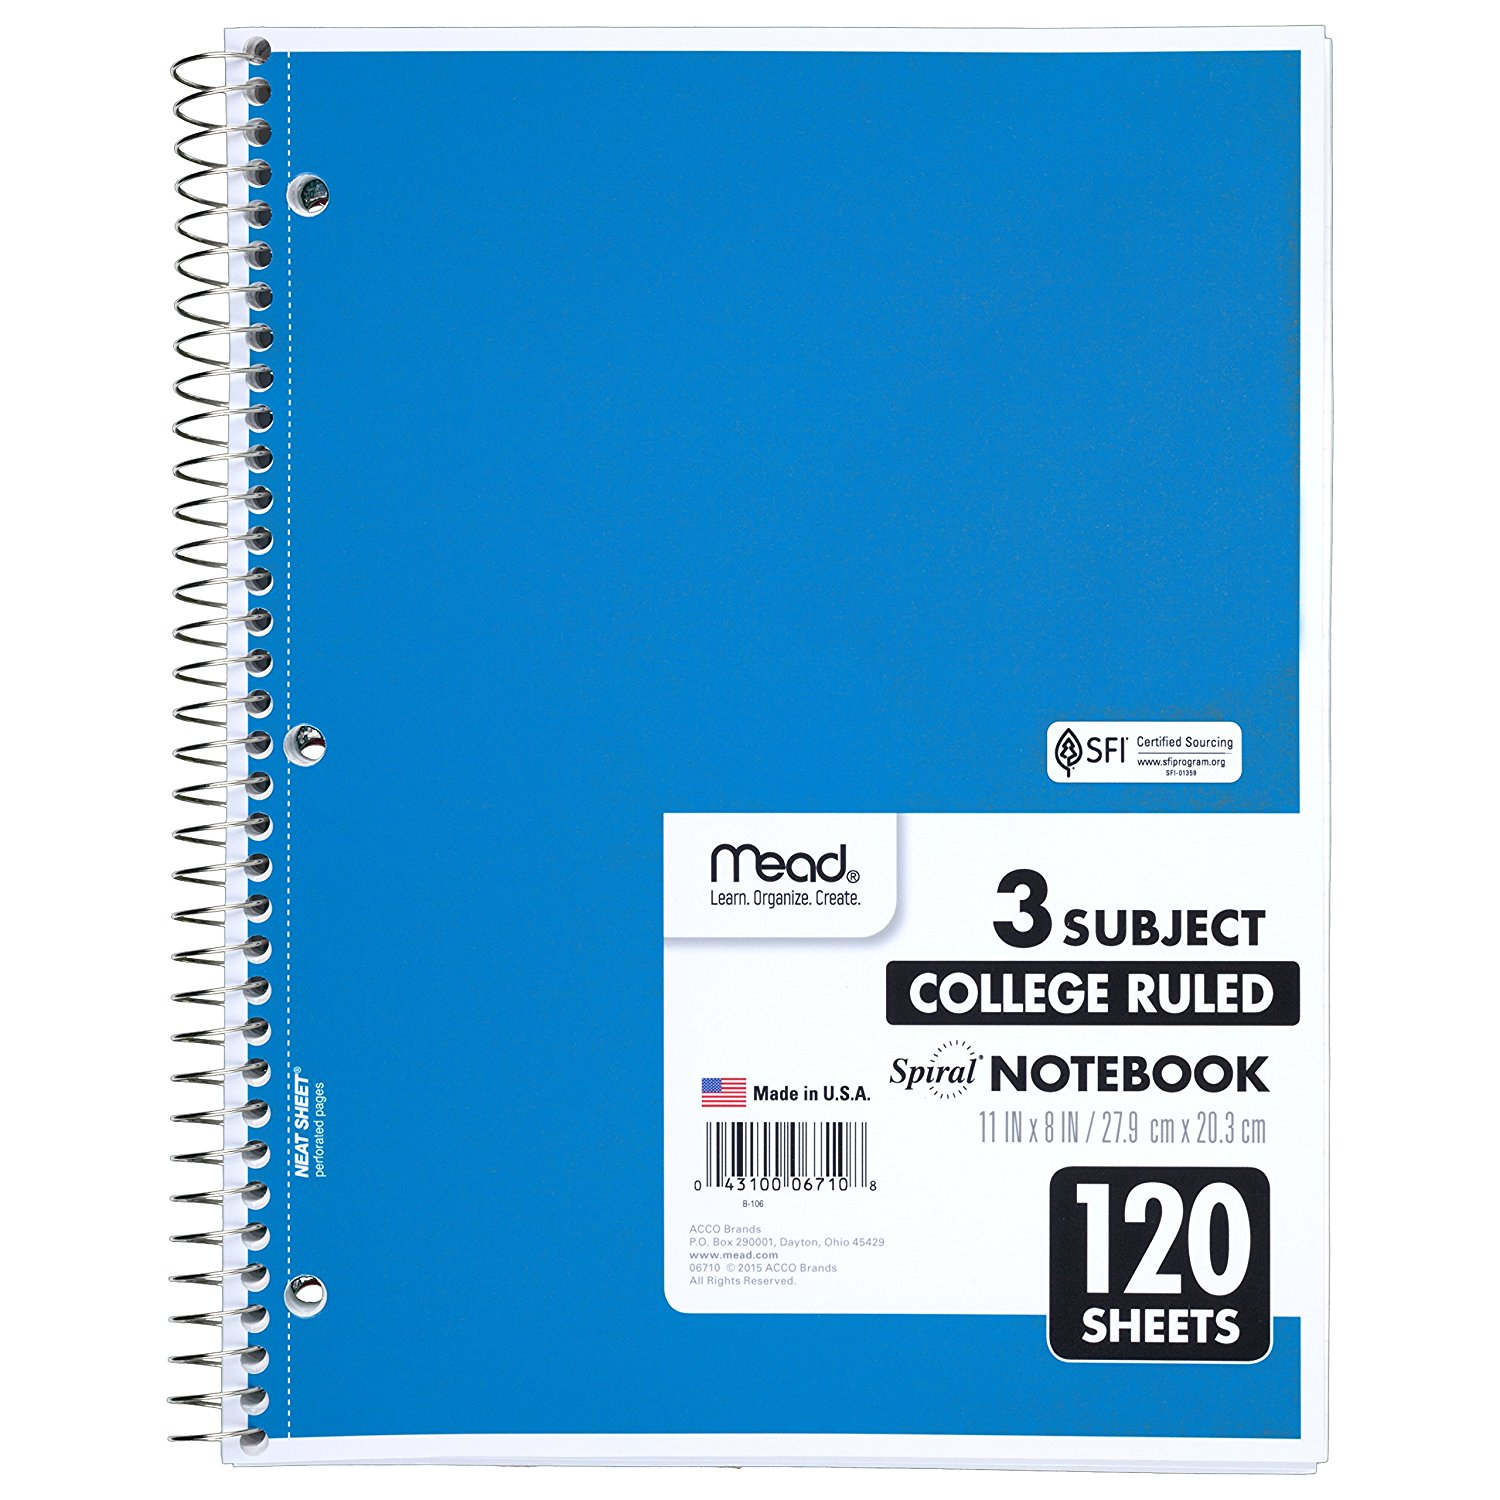 Mead Spiral Notebook 3 Subject College Ruled 8 X 11 Inch 120